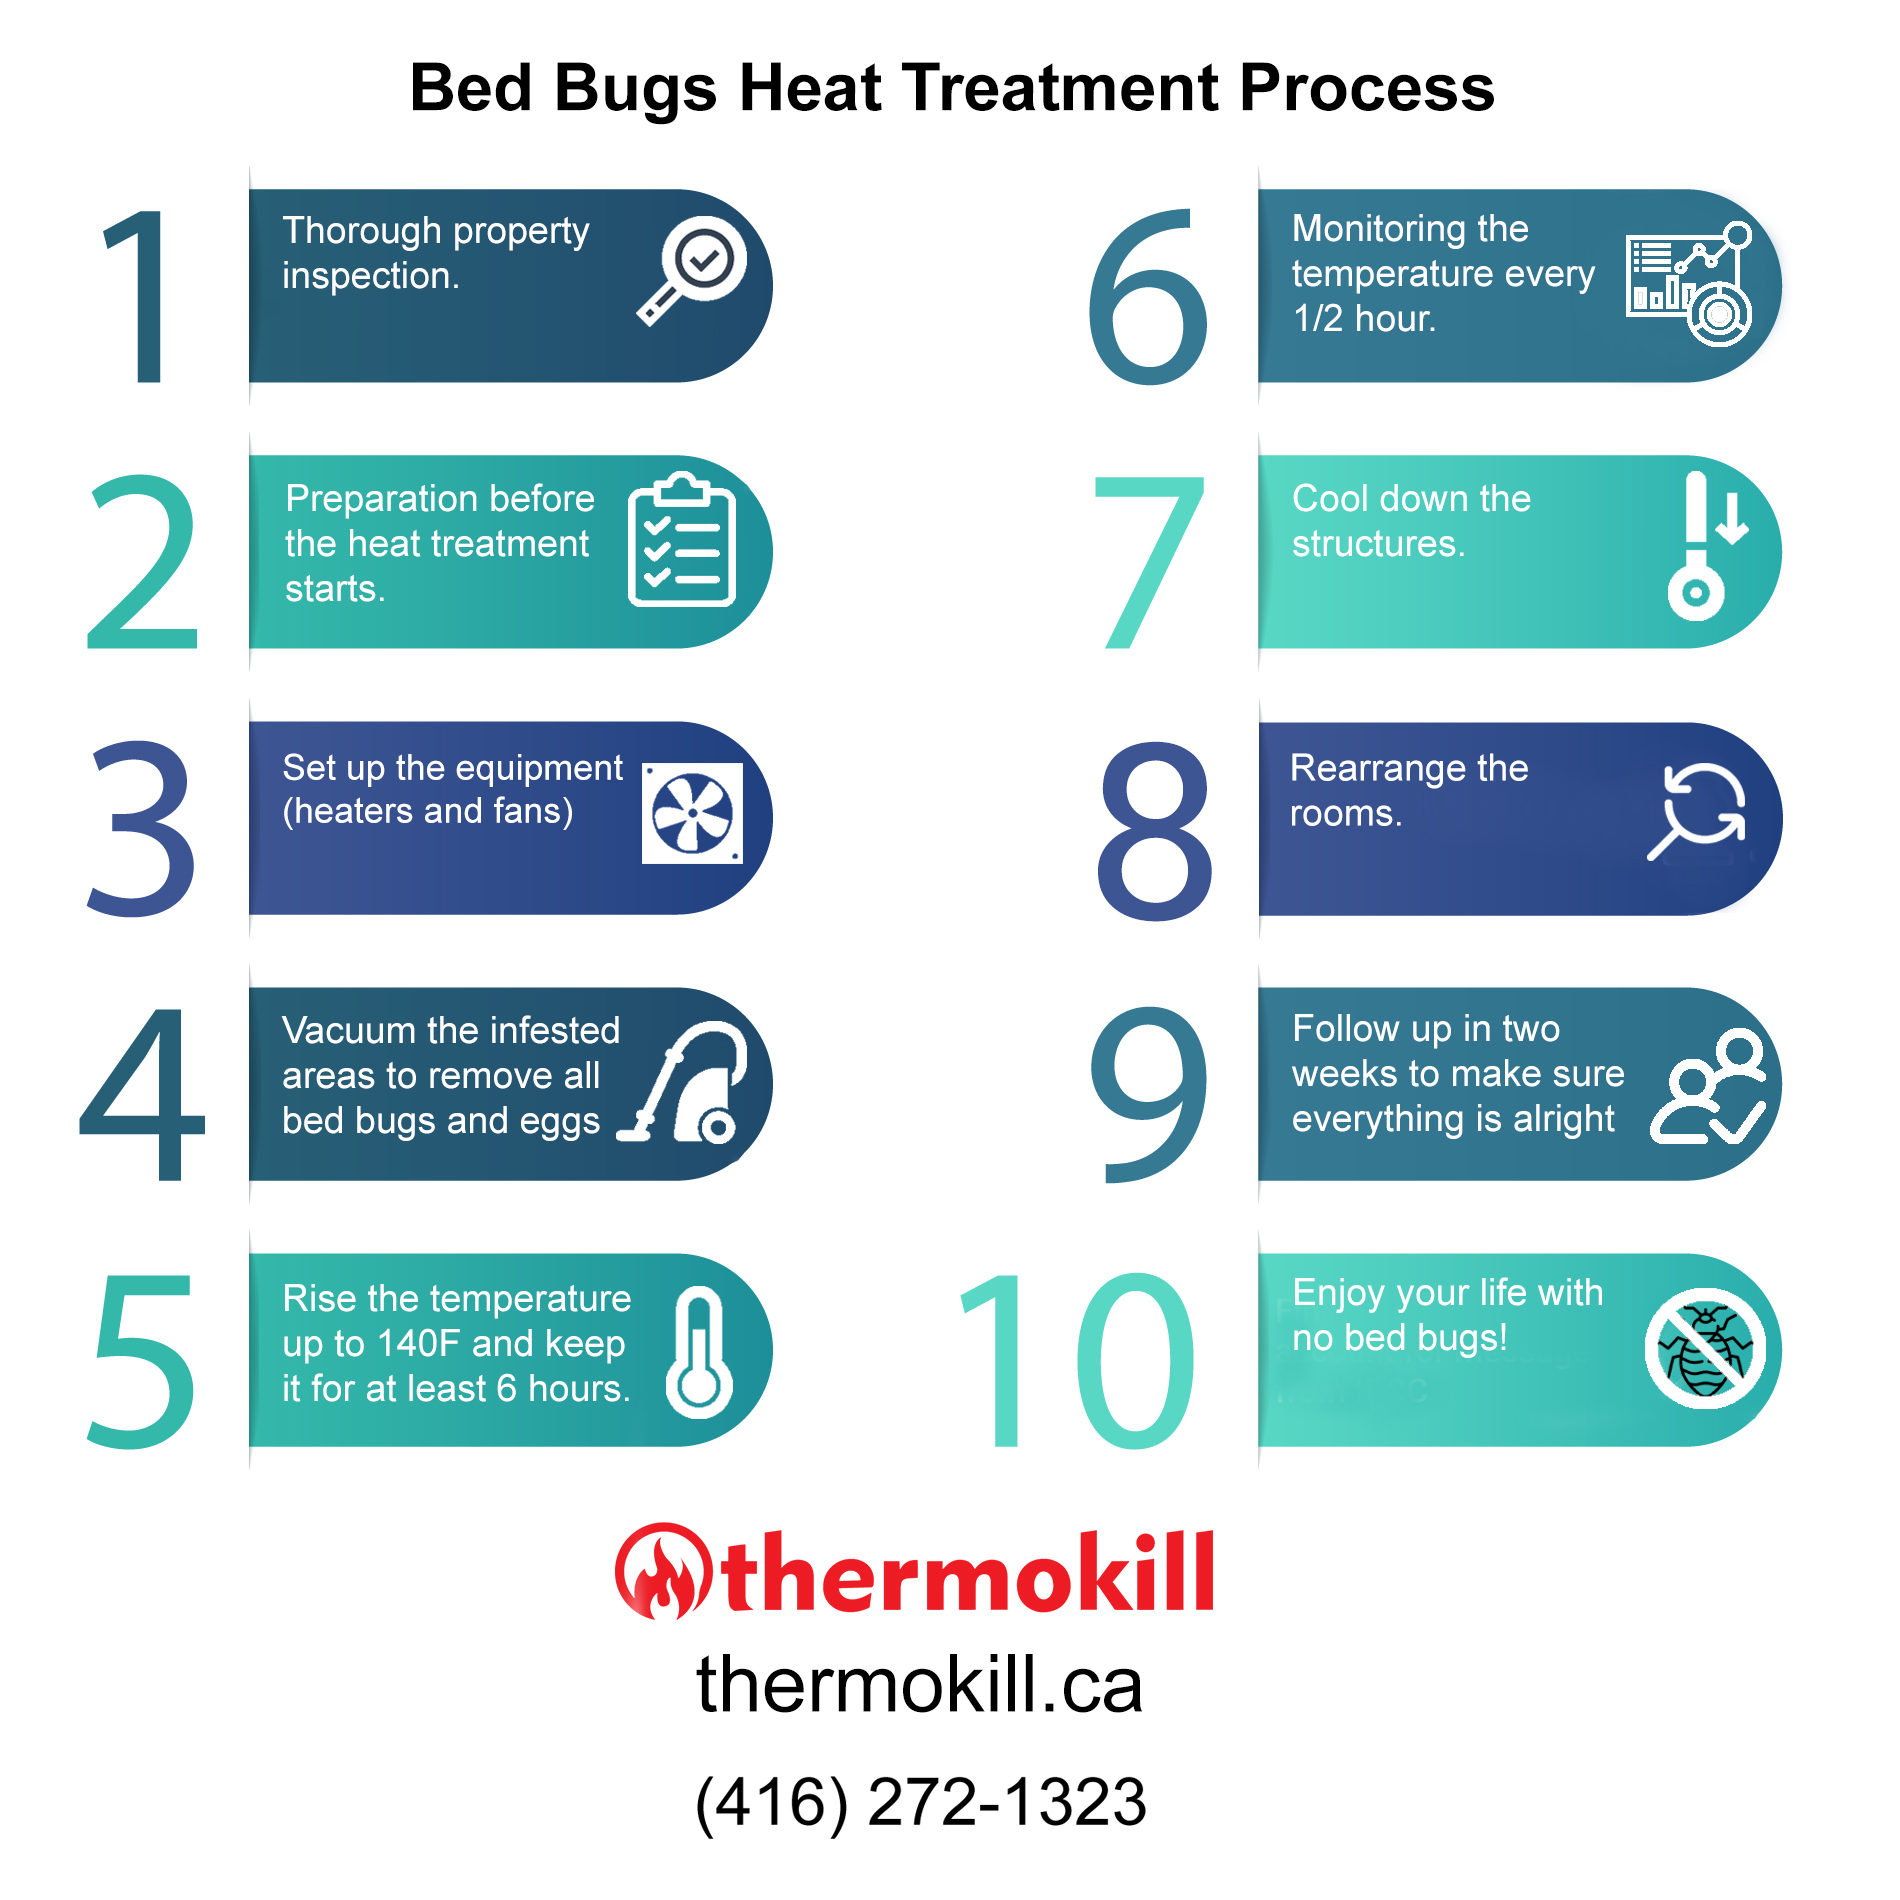 Infographic - Thermokill Bed Bug Heat Treatment